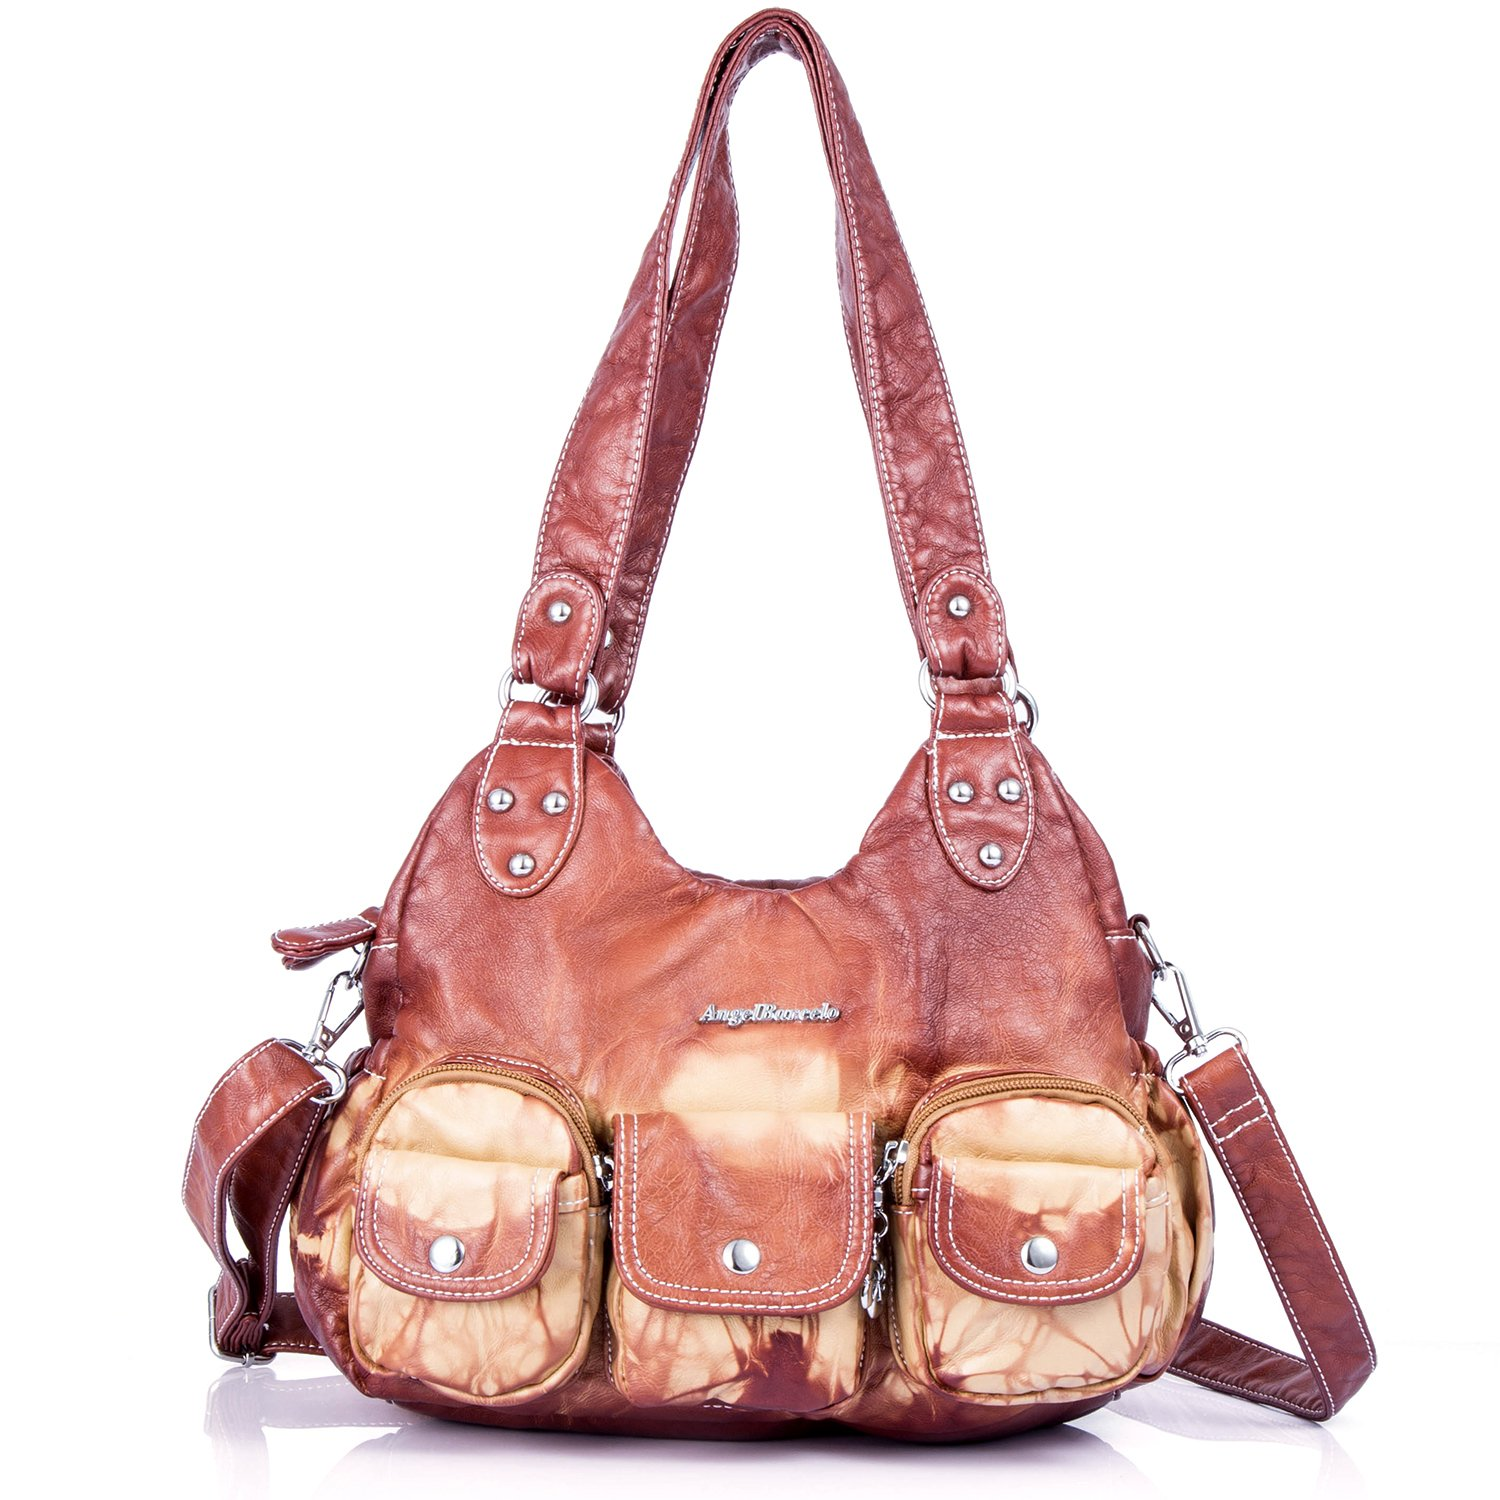 Soft Roomy Fashion Hobo Womens Handbags Ladies Purses Satchel Shoulder Bags Tote Washed Leather Bag (XS161497 Brown)